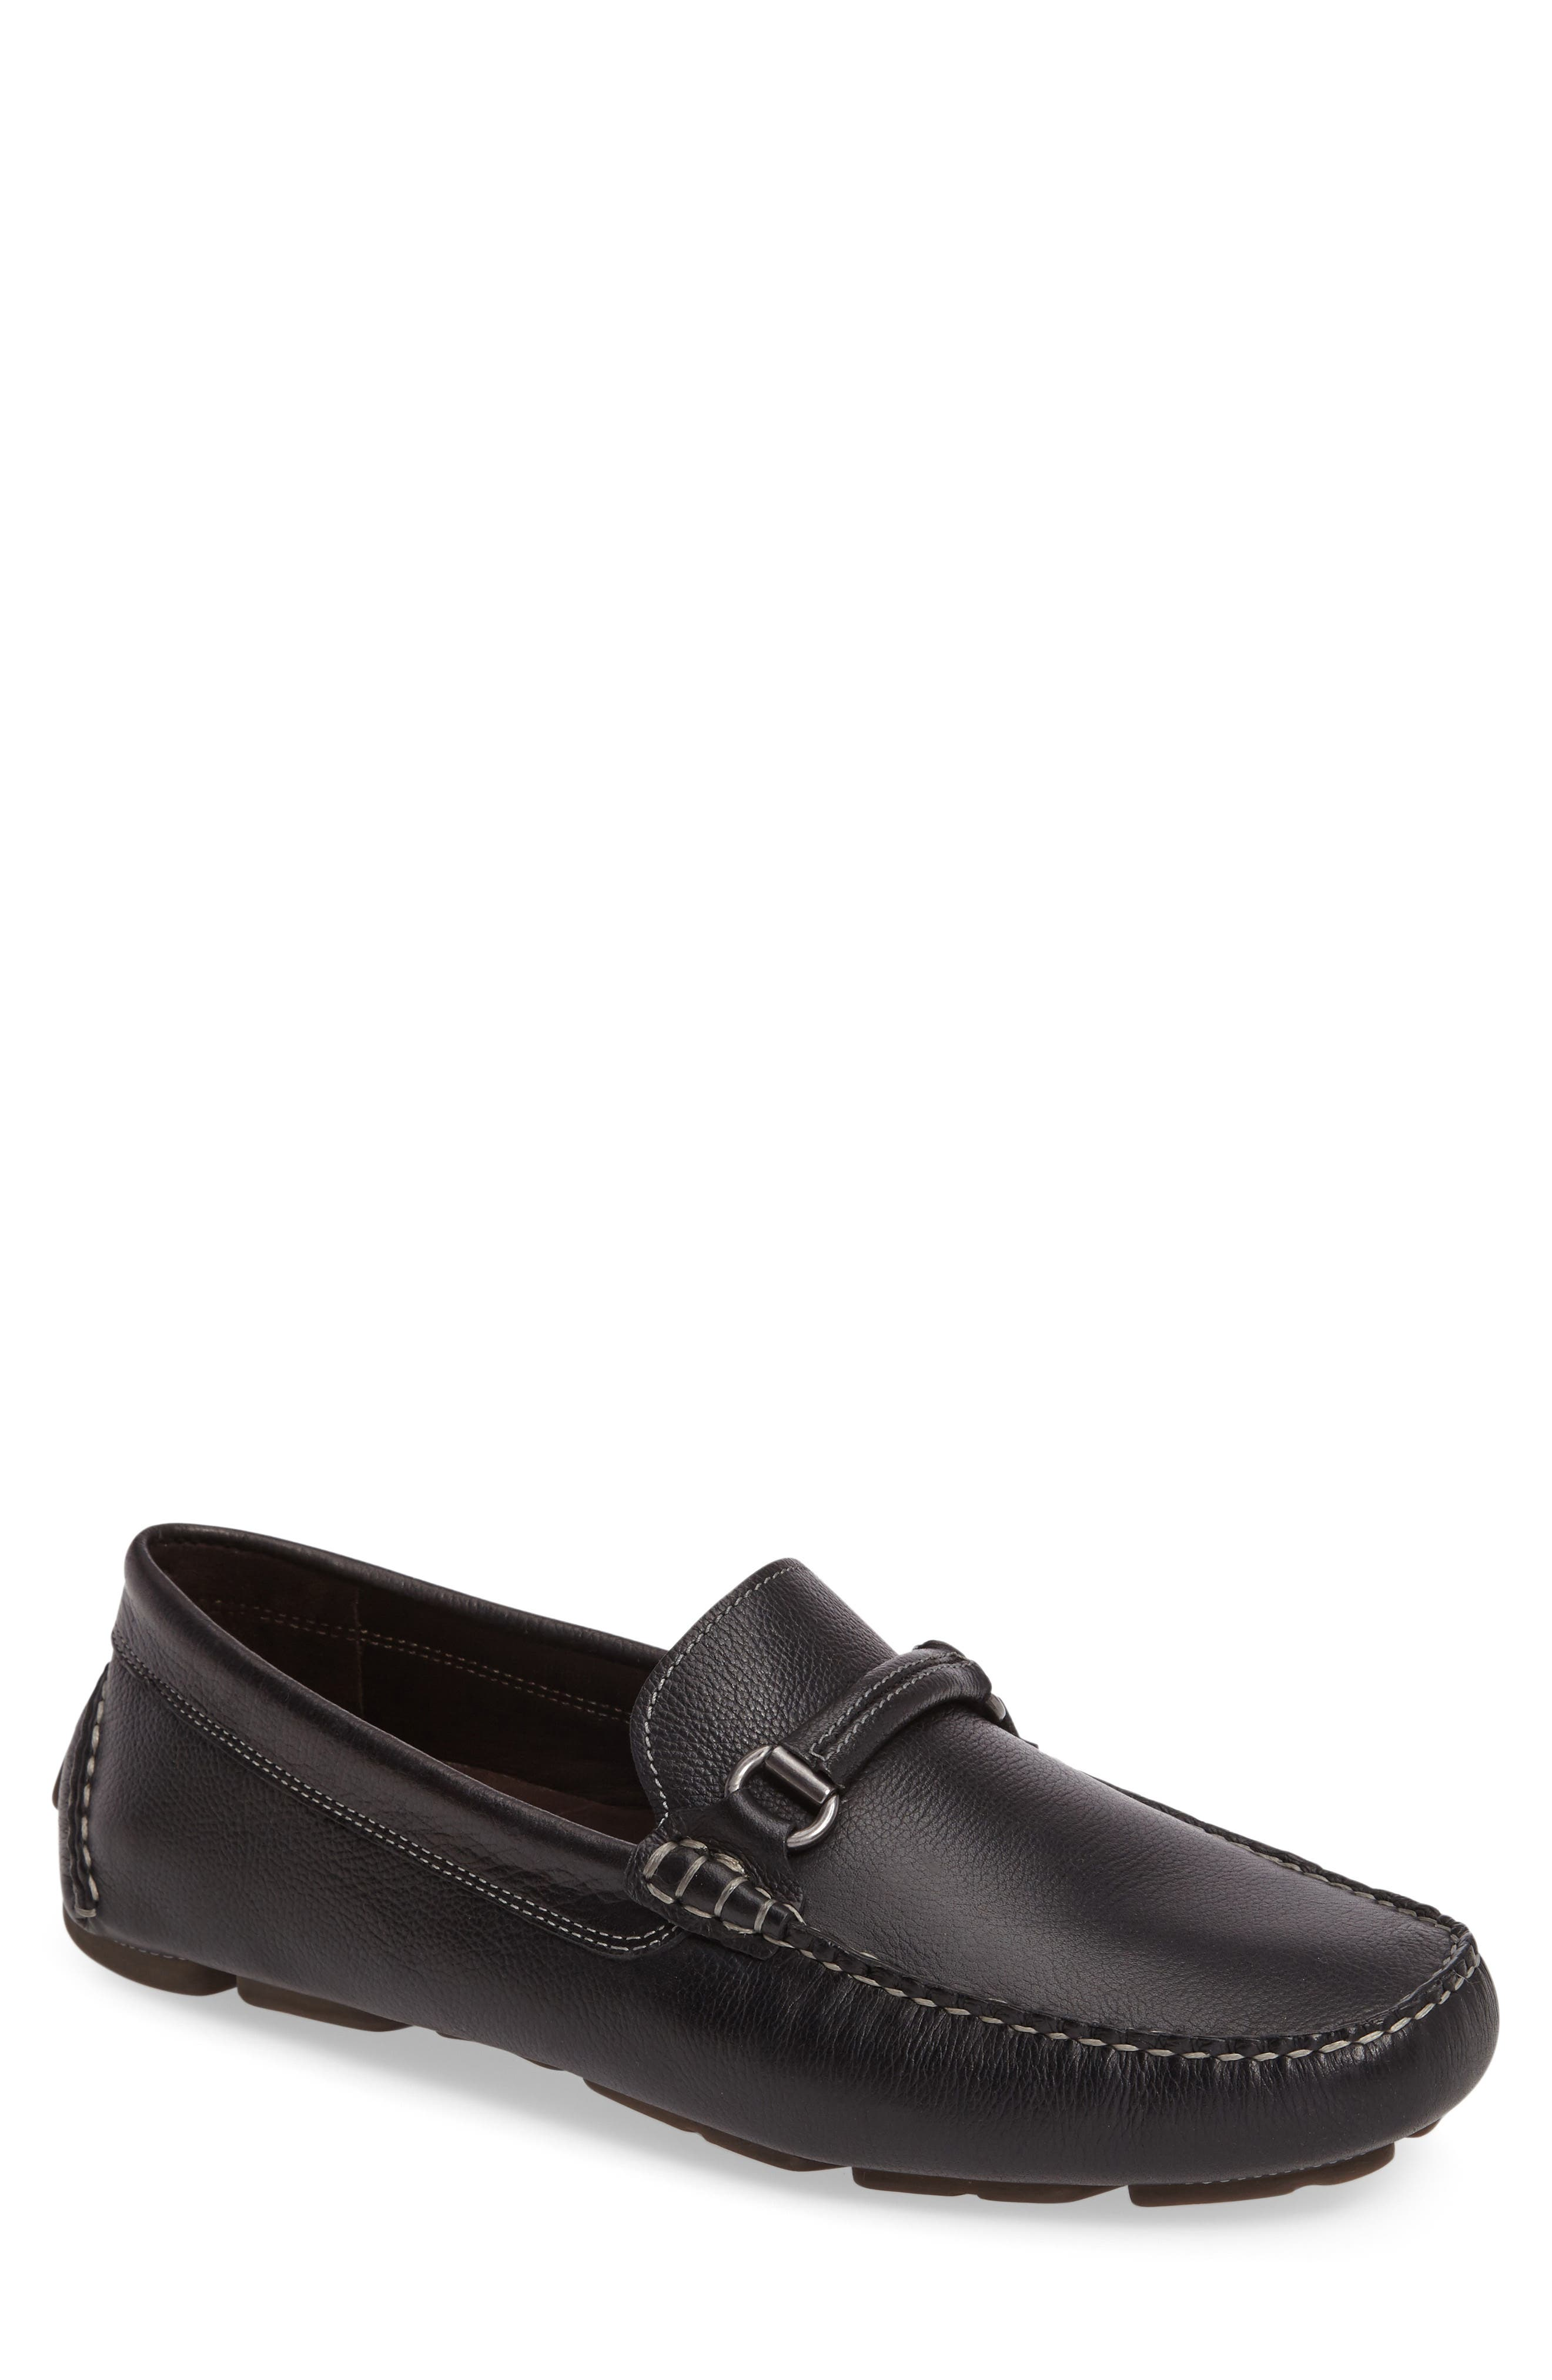 Gibson Bit Driving Loafer,                             Main thumbnail 1, color,                             BLACK LEATHER